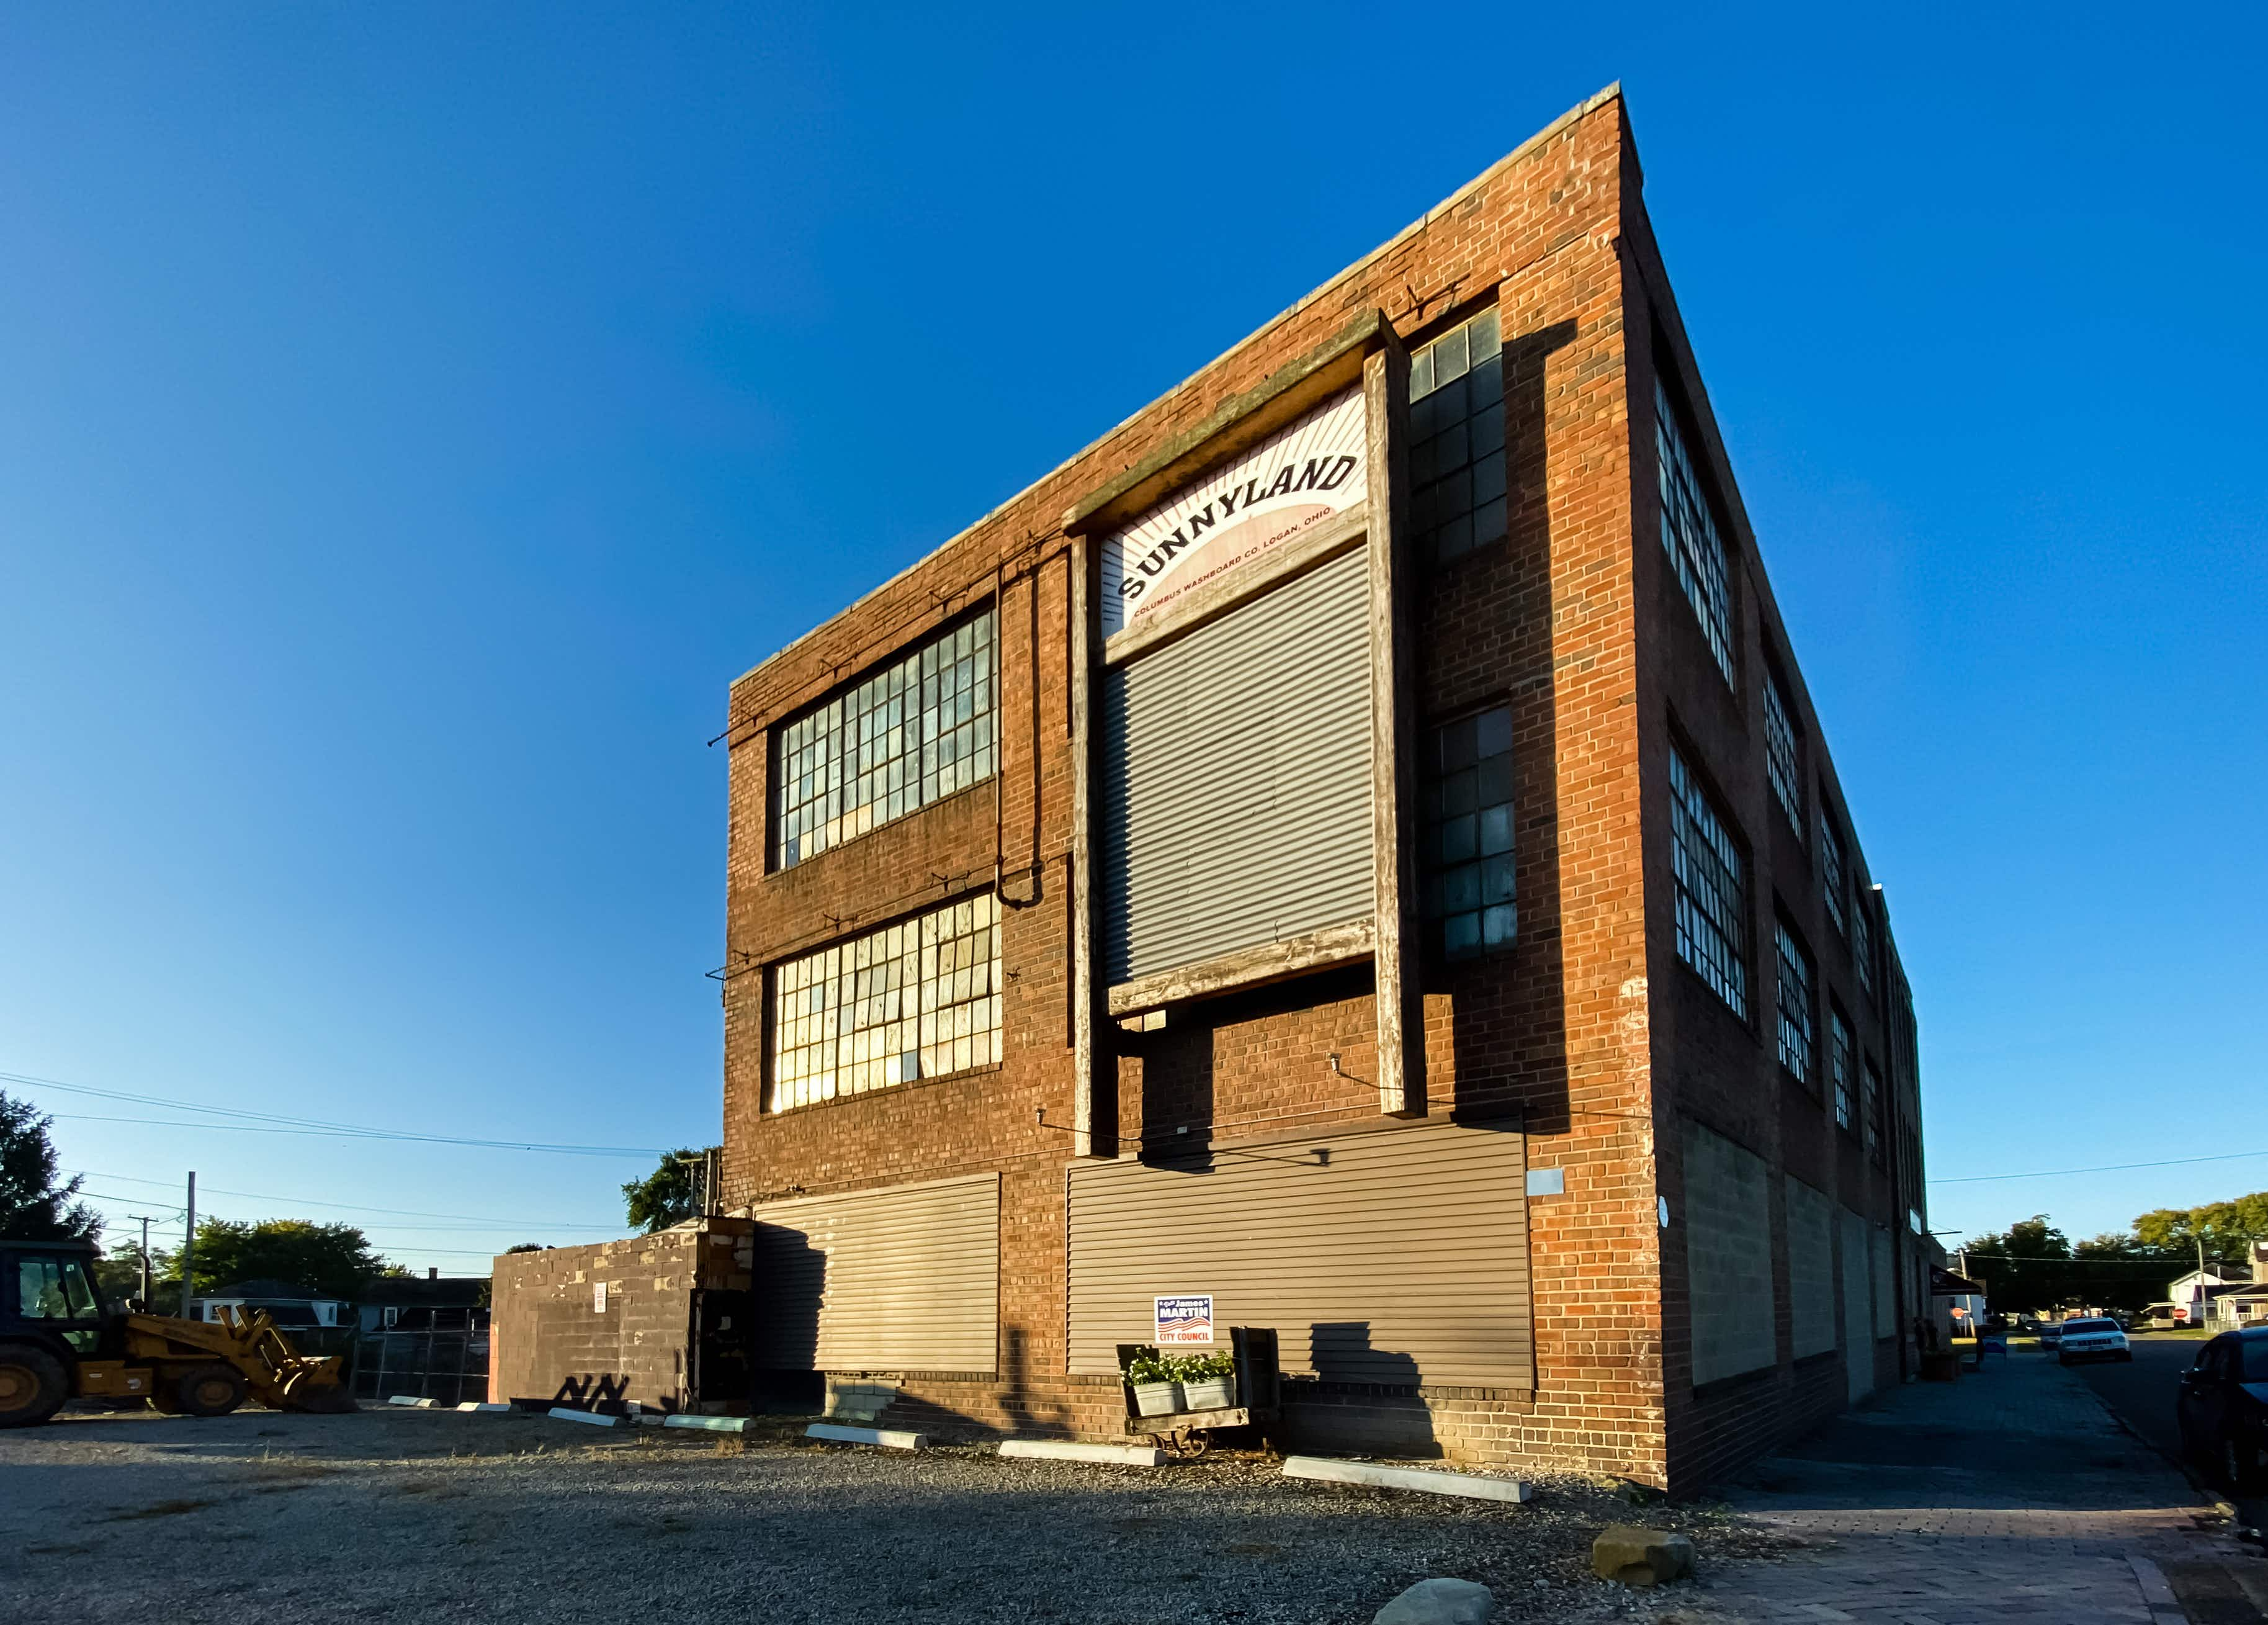 Not only does the Columbus Washboard Factory manufacture the classic laundry tool, it's also home to the world's largest washboard, which hangs from the building exterior. © Laura Watilo Blake / Lonely Planet